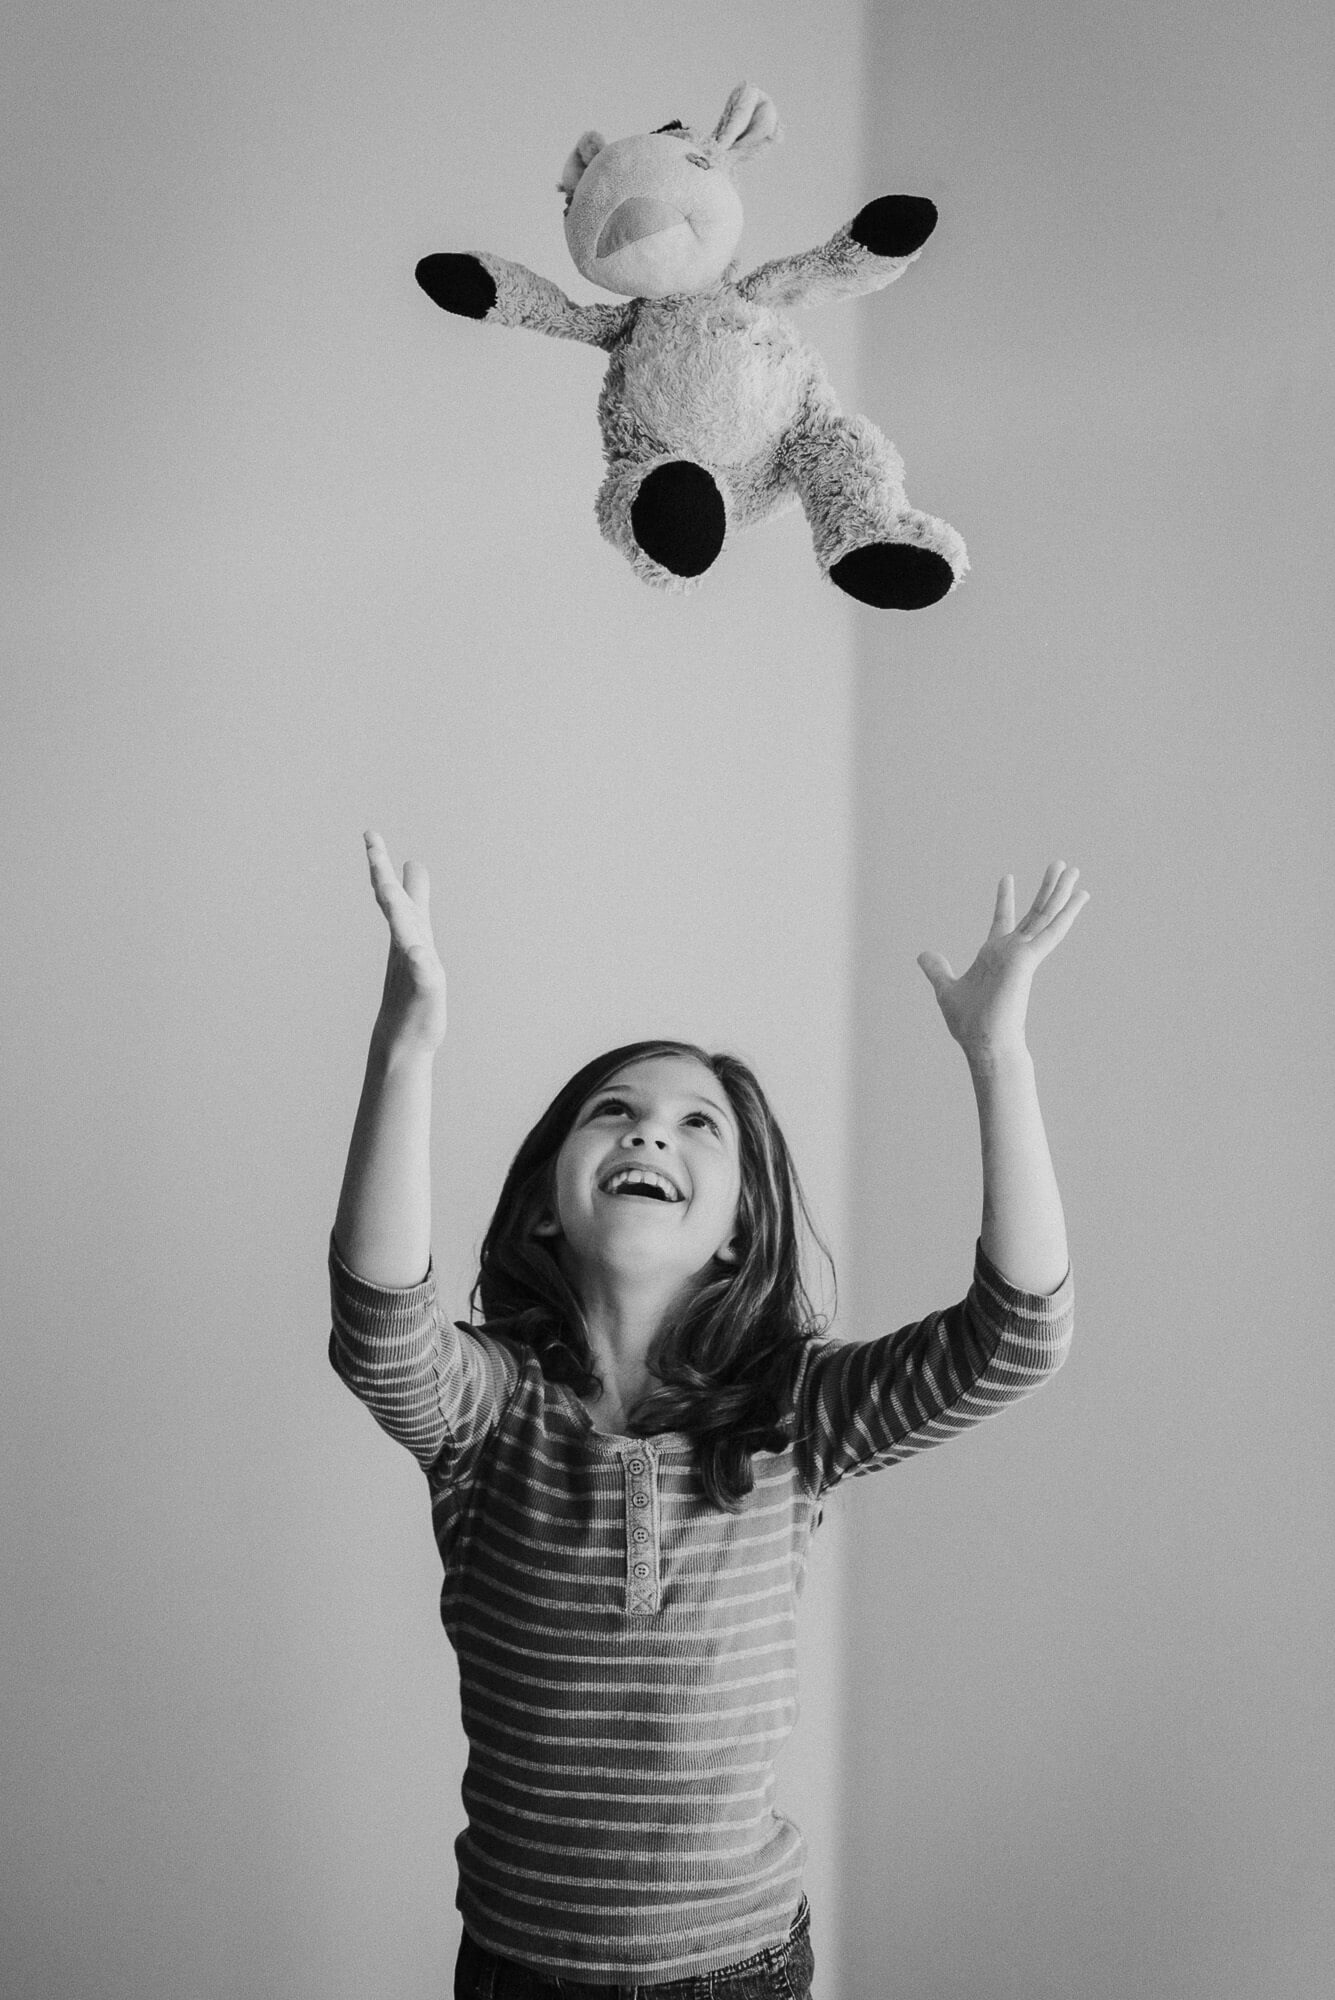 girl throwing stuffed animal up in the air